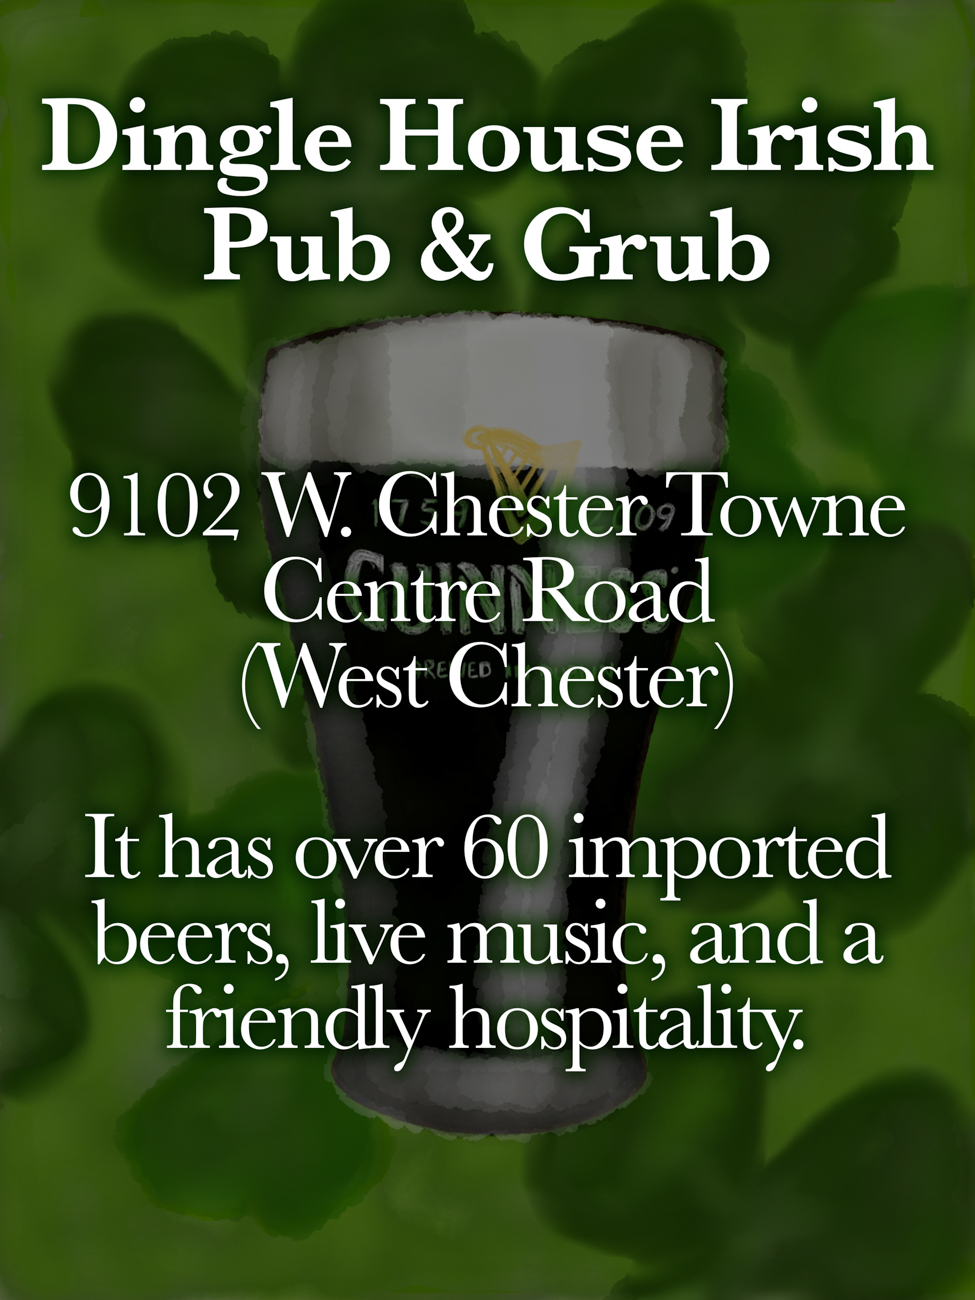 Dingle House Irish Pub & Grub / ADDRESS: 9102 W. Chester Towne Centre Road (West Chester) // Published: 3.16.19